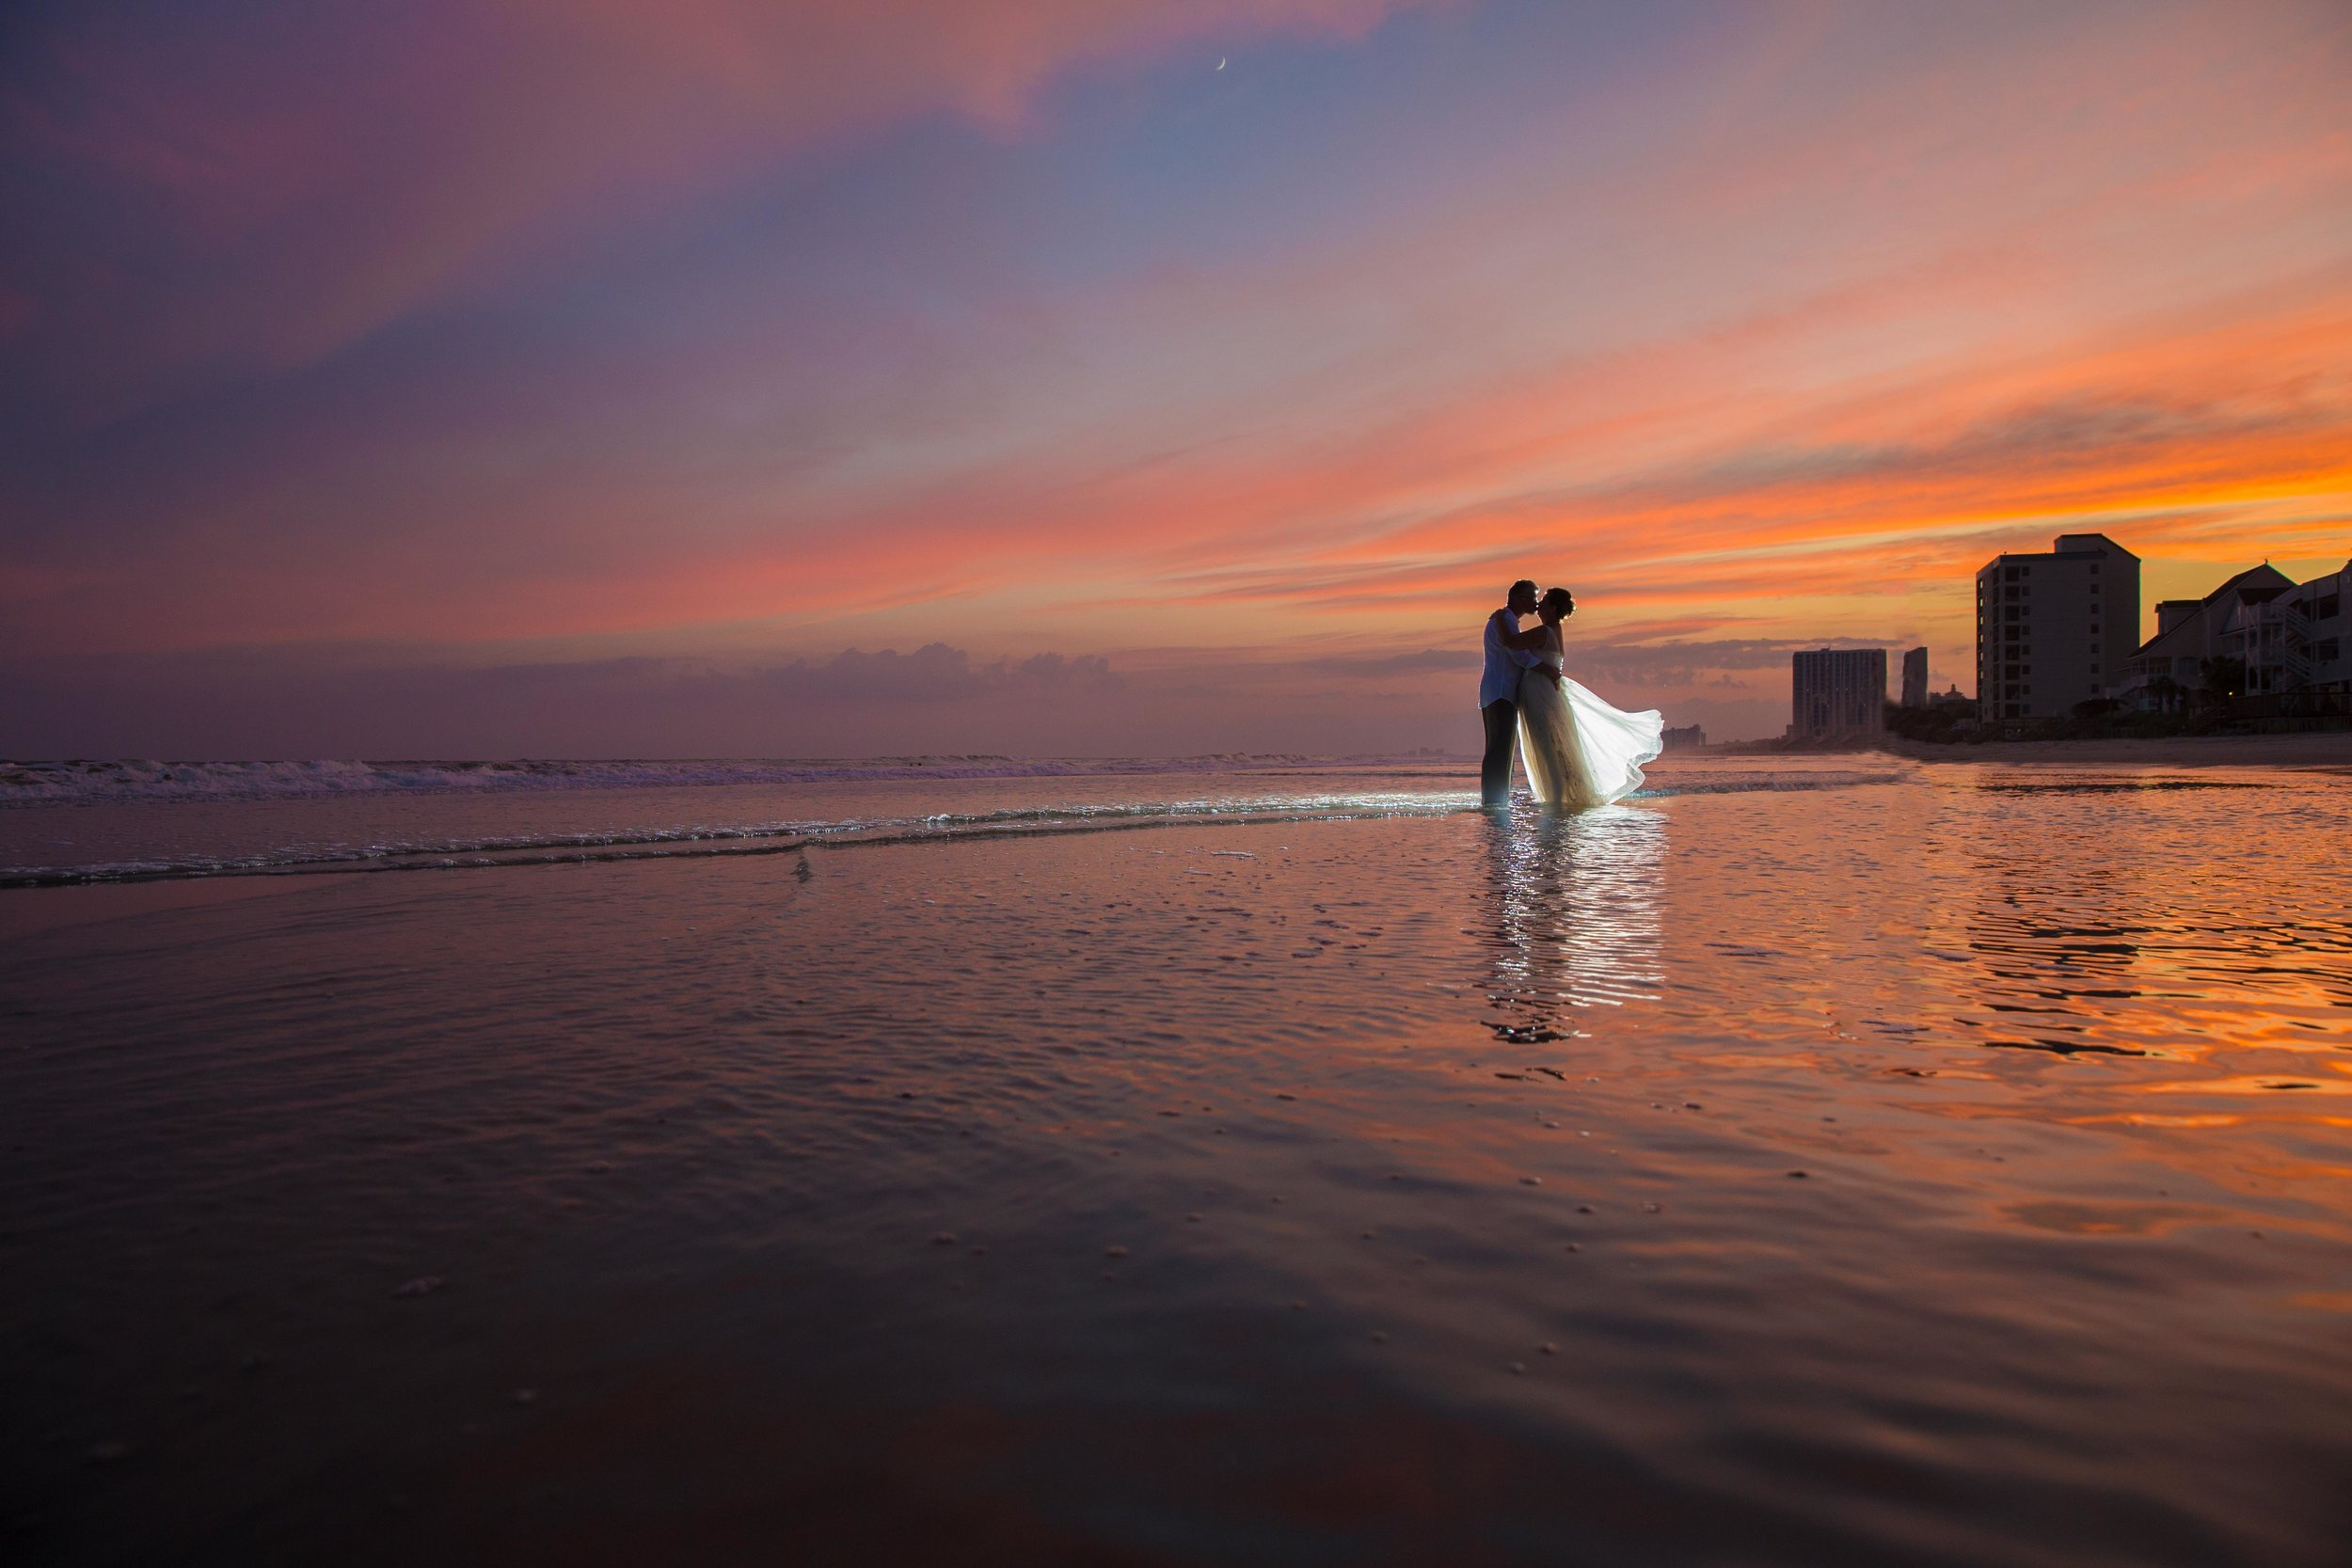 Gorgeous sunset portrait of a newlywed couple on the beach